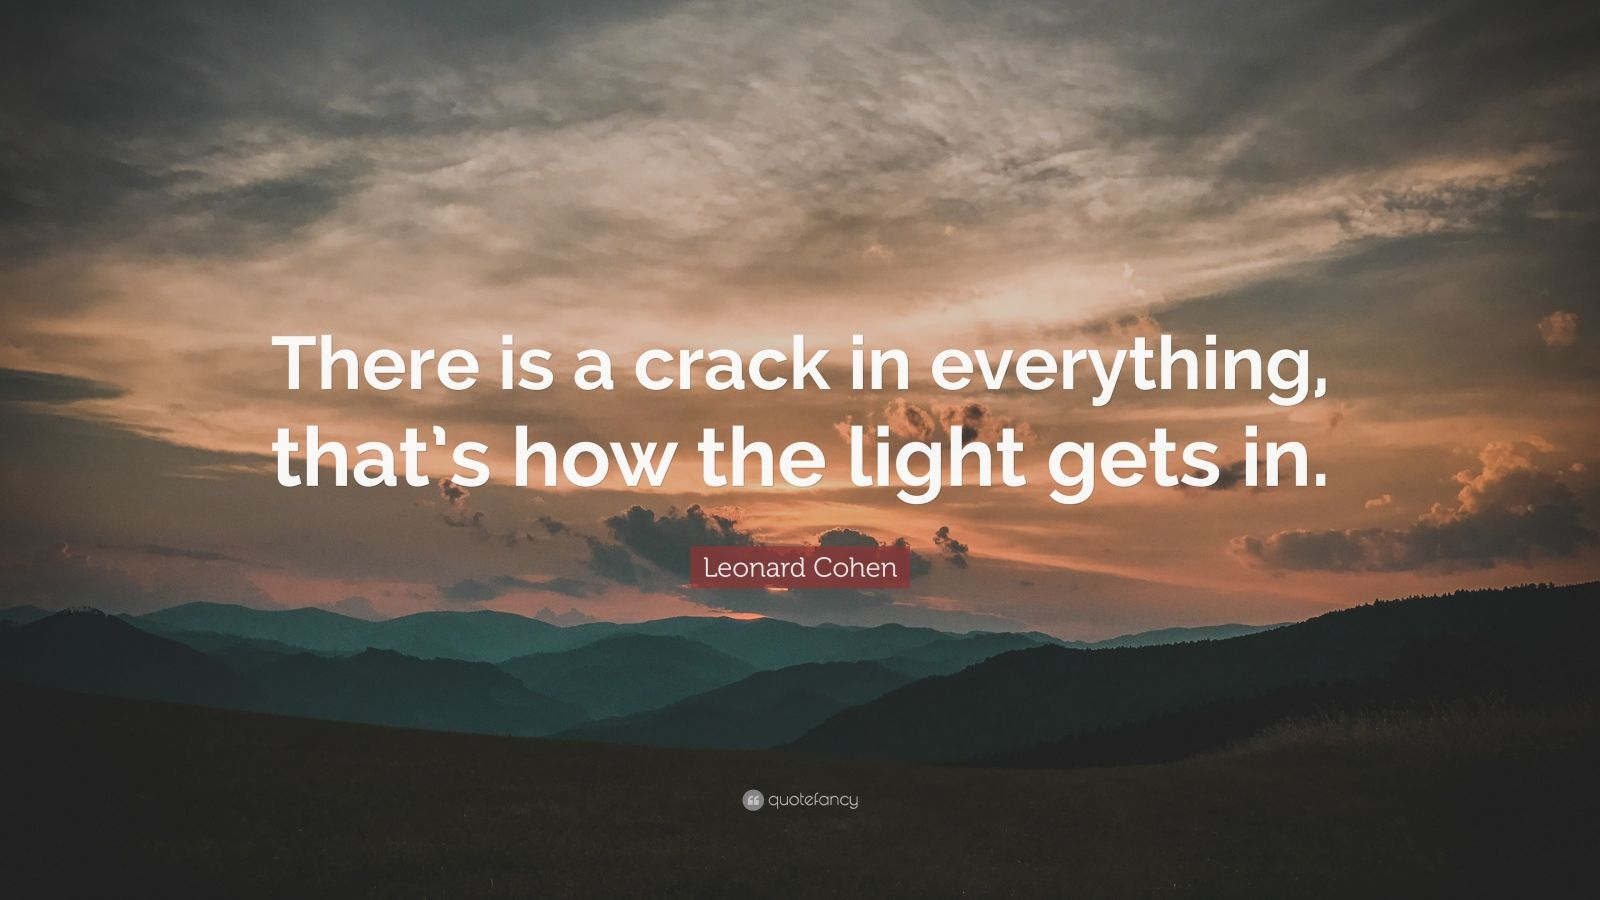 Leonard Cohen Quote There is a crack in everything that